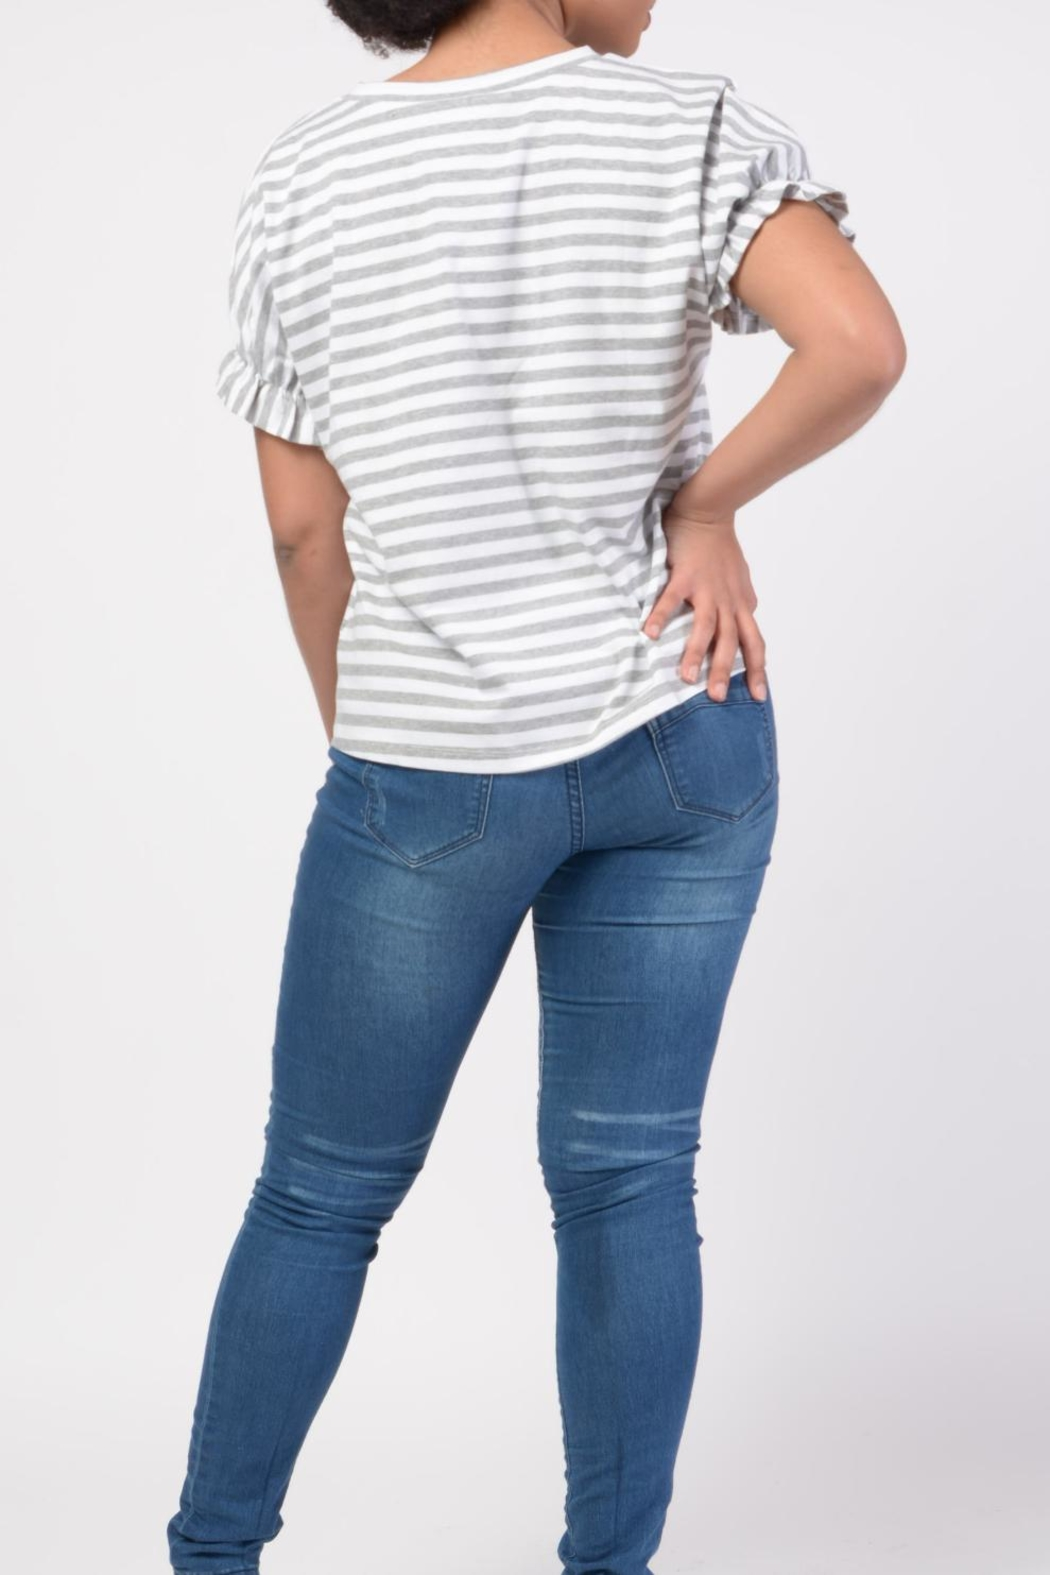 MODChic Couture Striped Basic Tee - Side Cropped Image